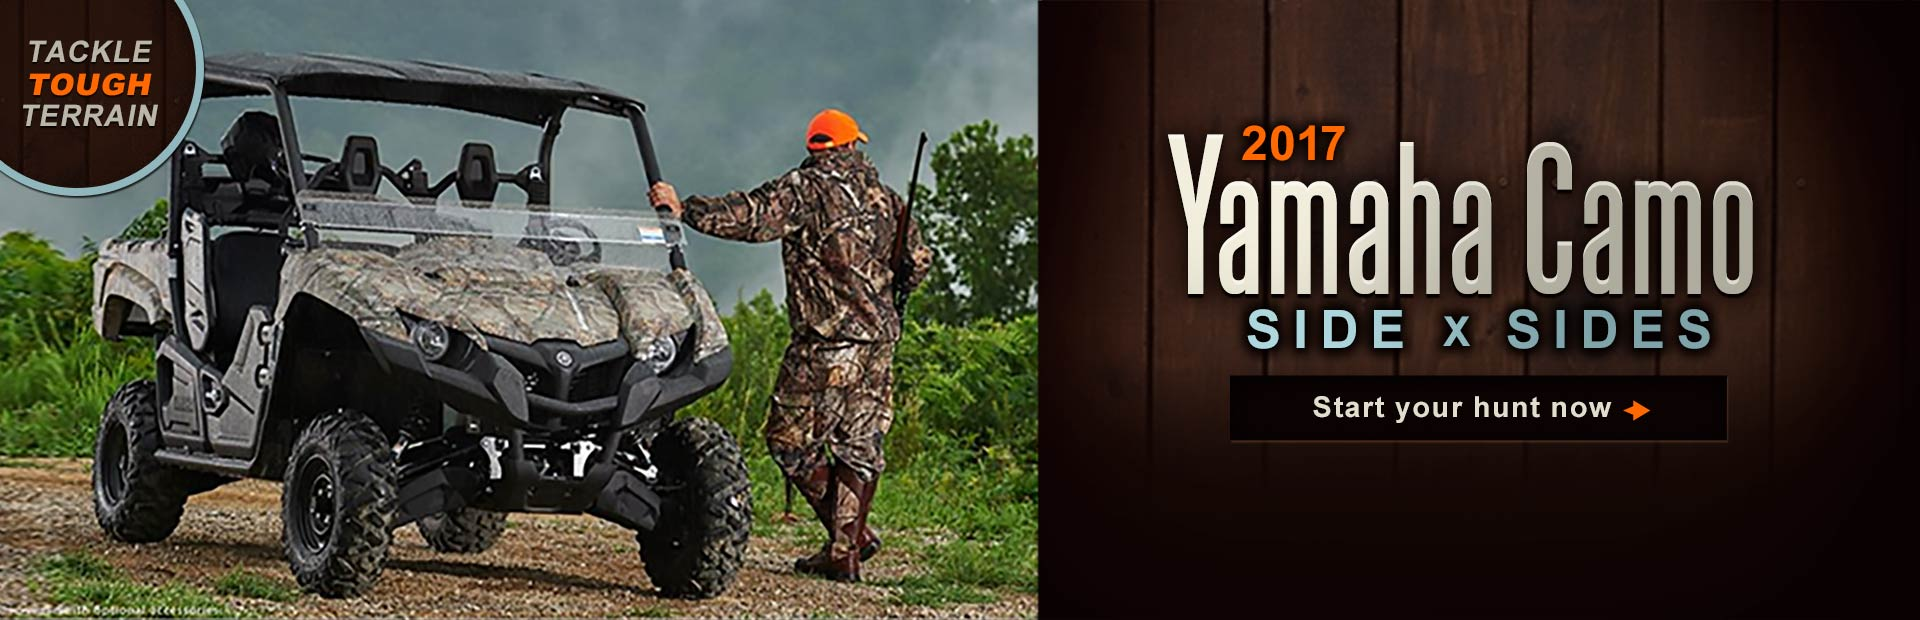 2017 Yamaha Camo Side x Sides: Click here to view the models.